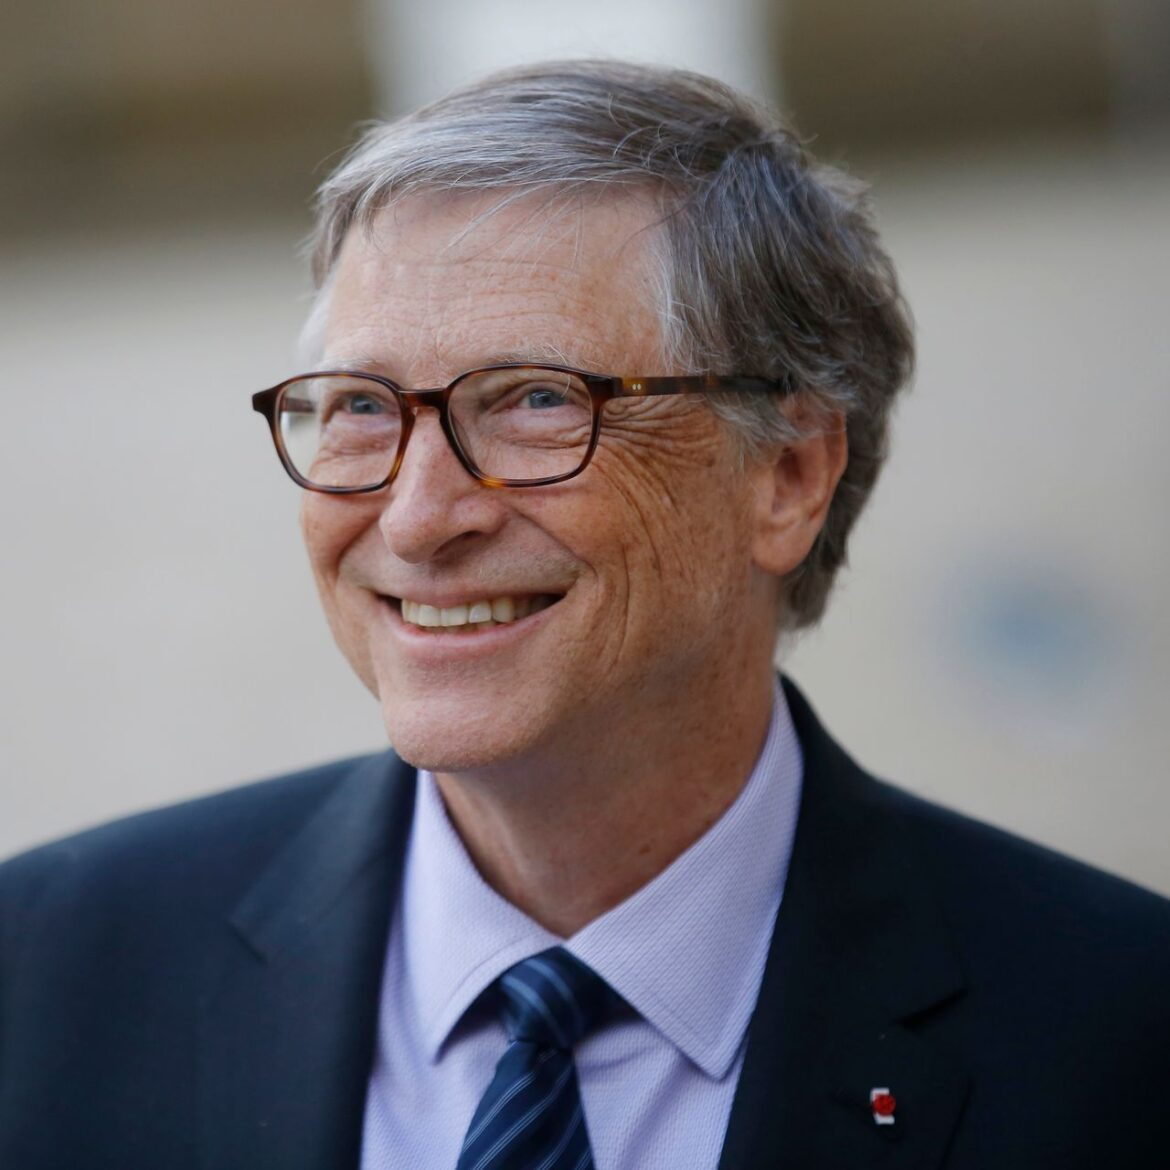 Bill Gates Net Worth in Indian Rupees (2021): Insights into the Business Magnate's Money